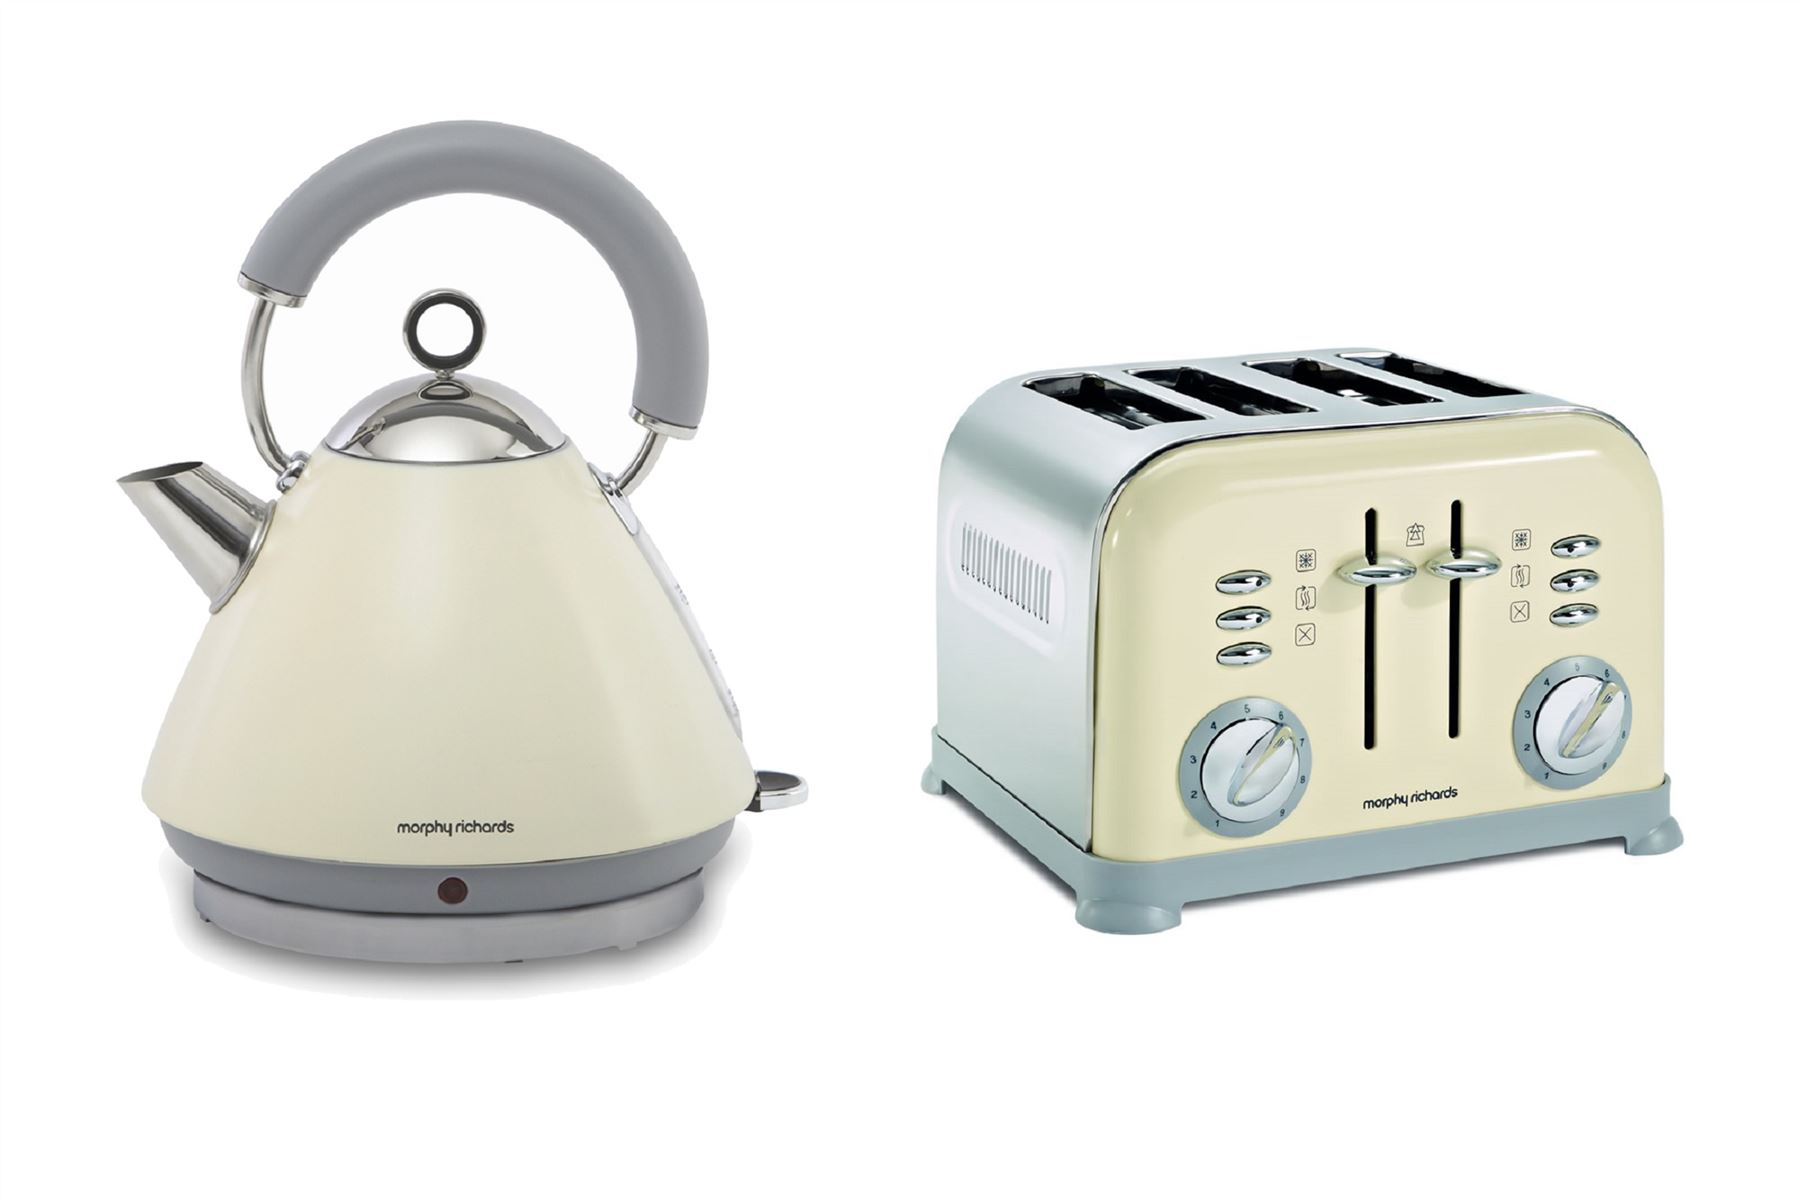 Image Gallery Kettle And Toaster Sets